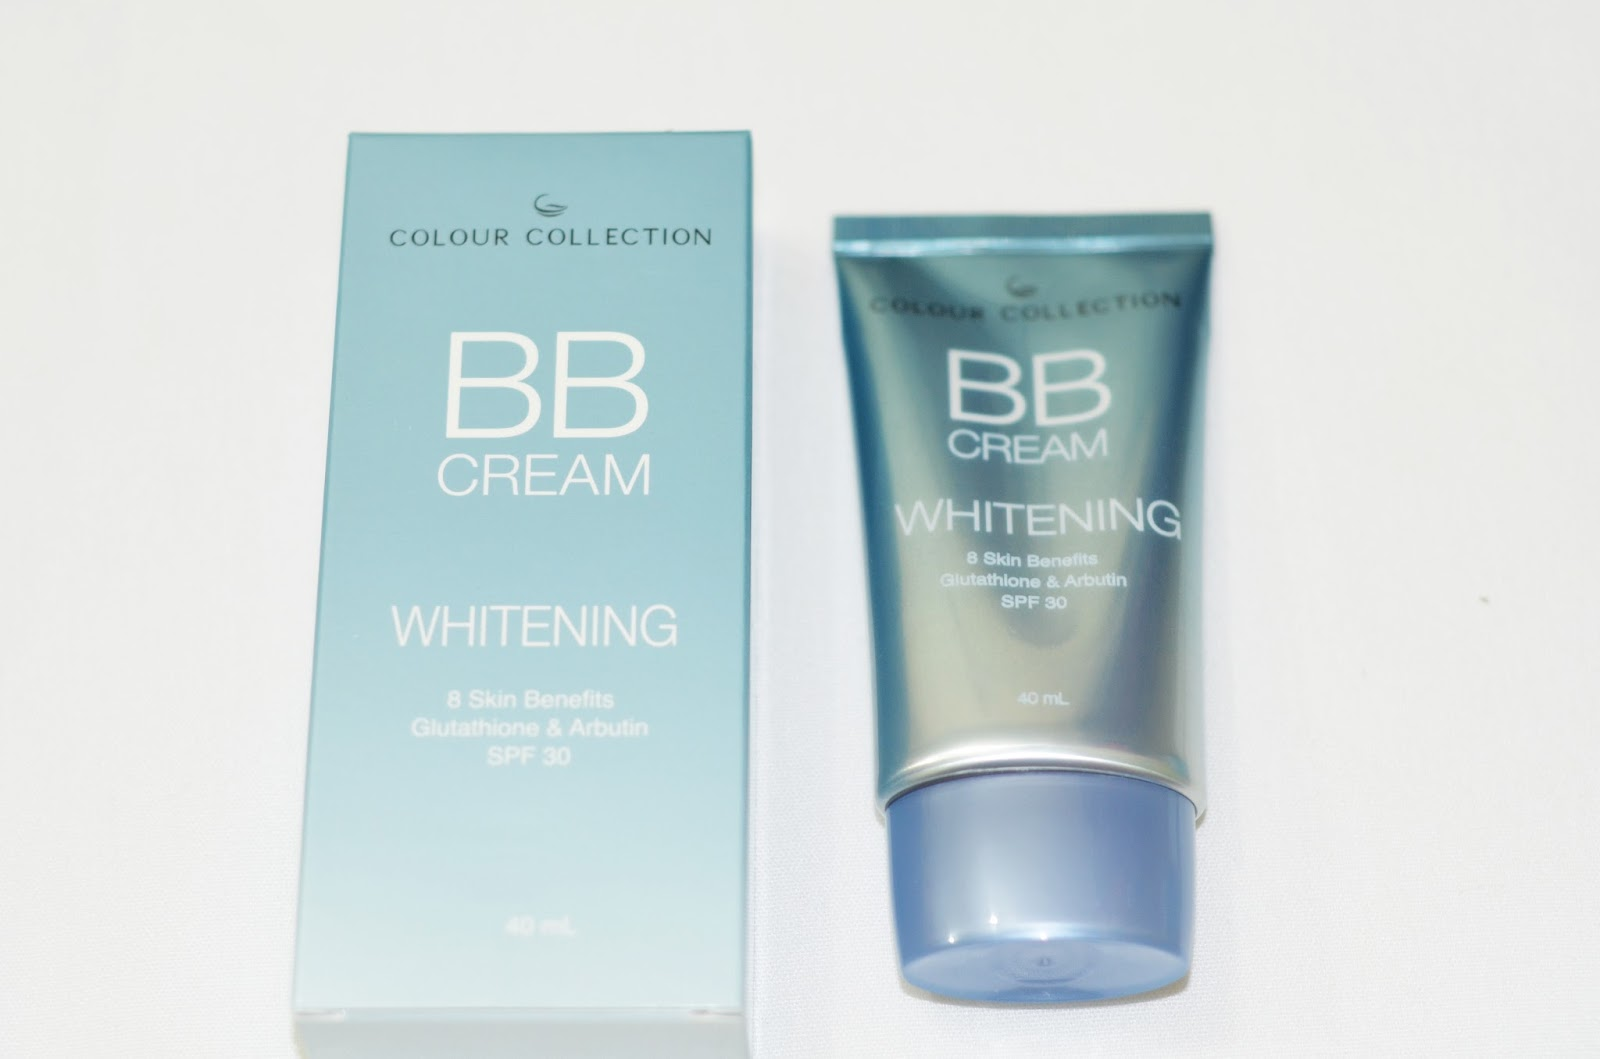 Colour Collection Whitening BB Cream SPF 30